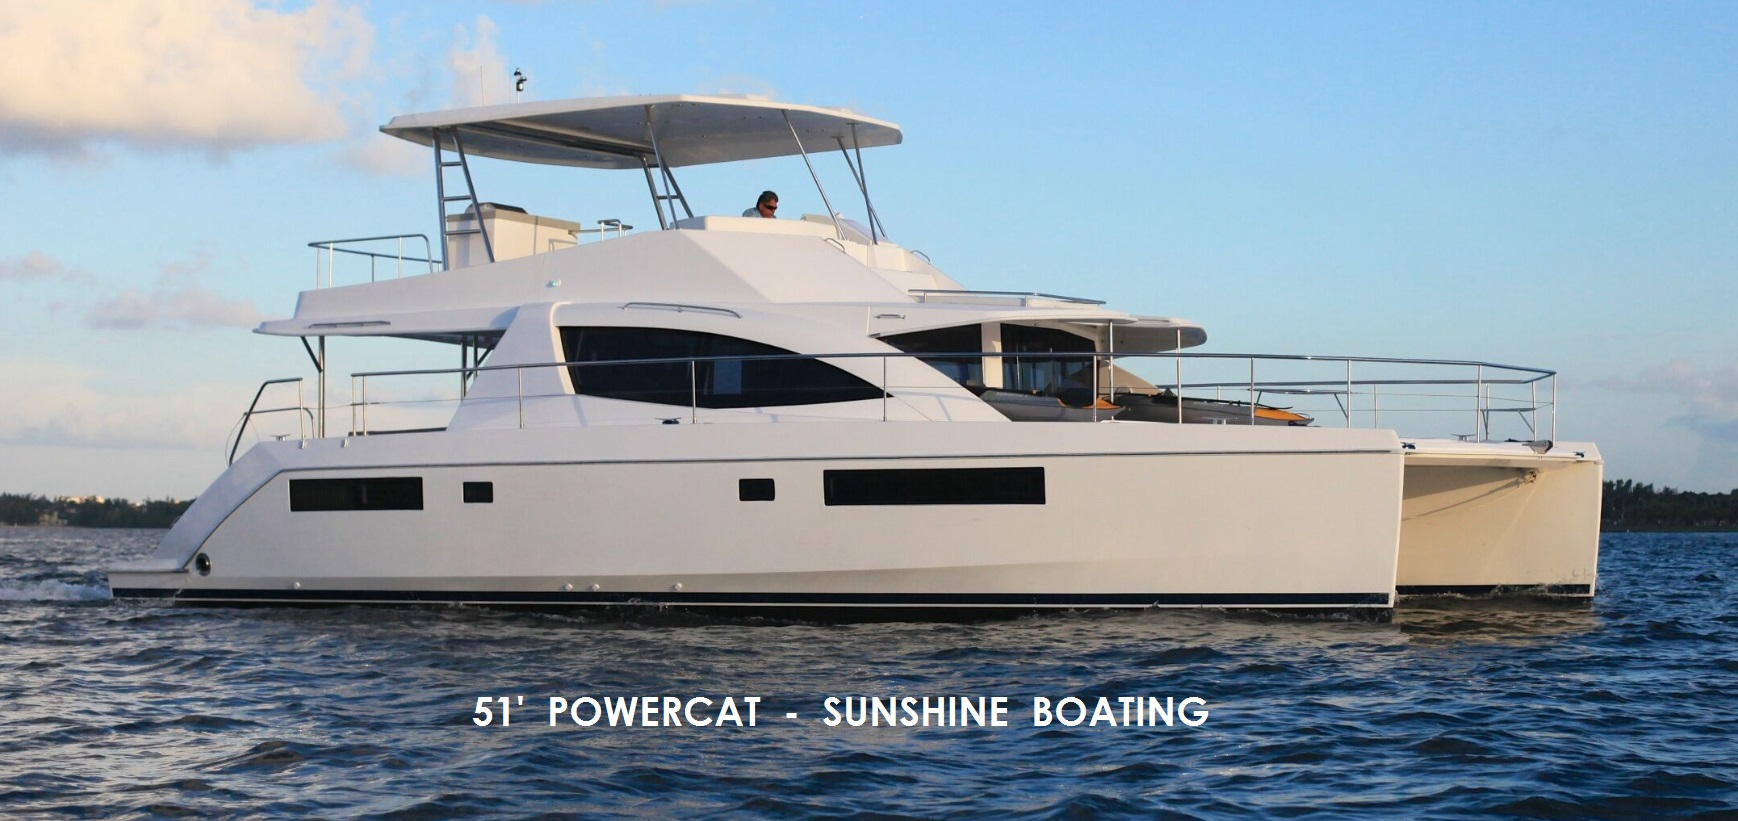 sunshine-boating-powercat-51-e